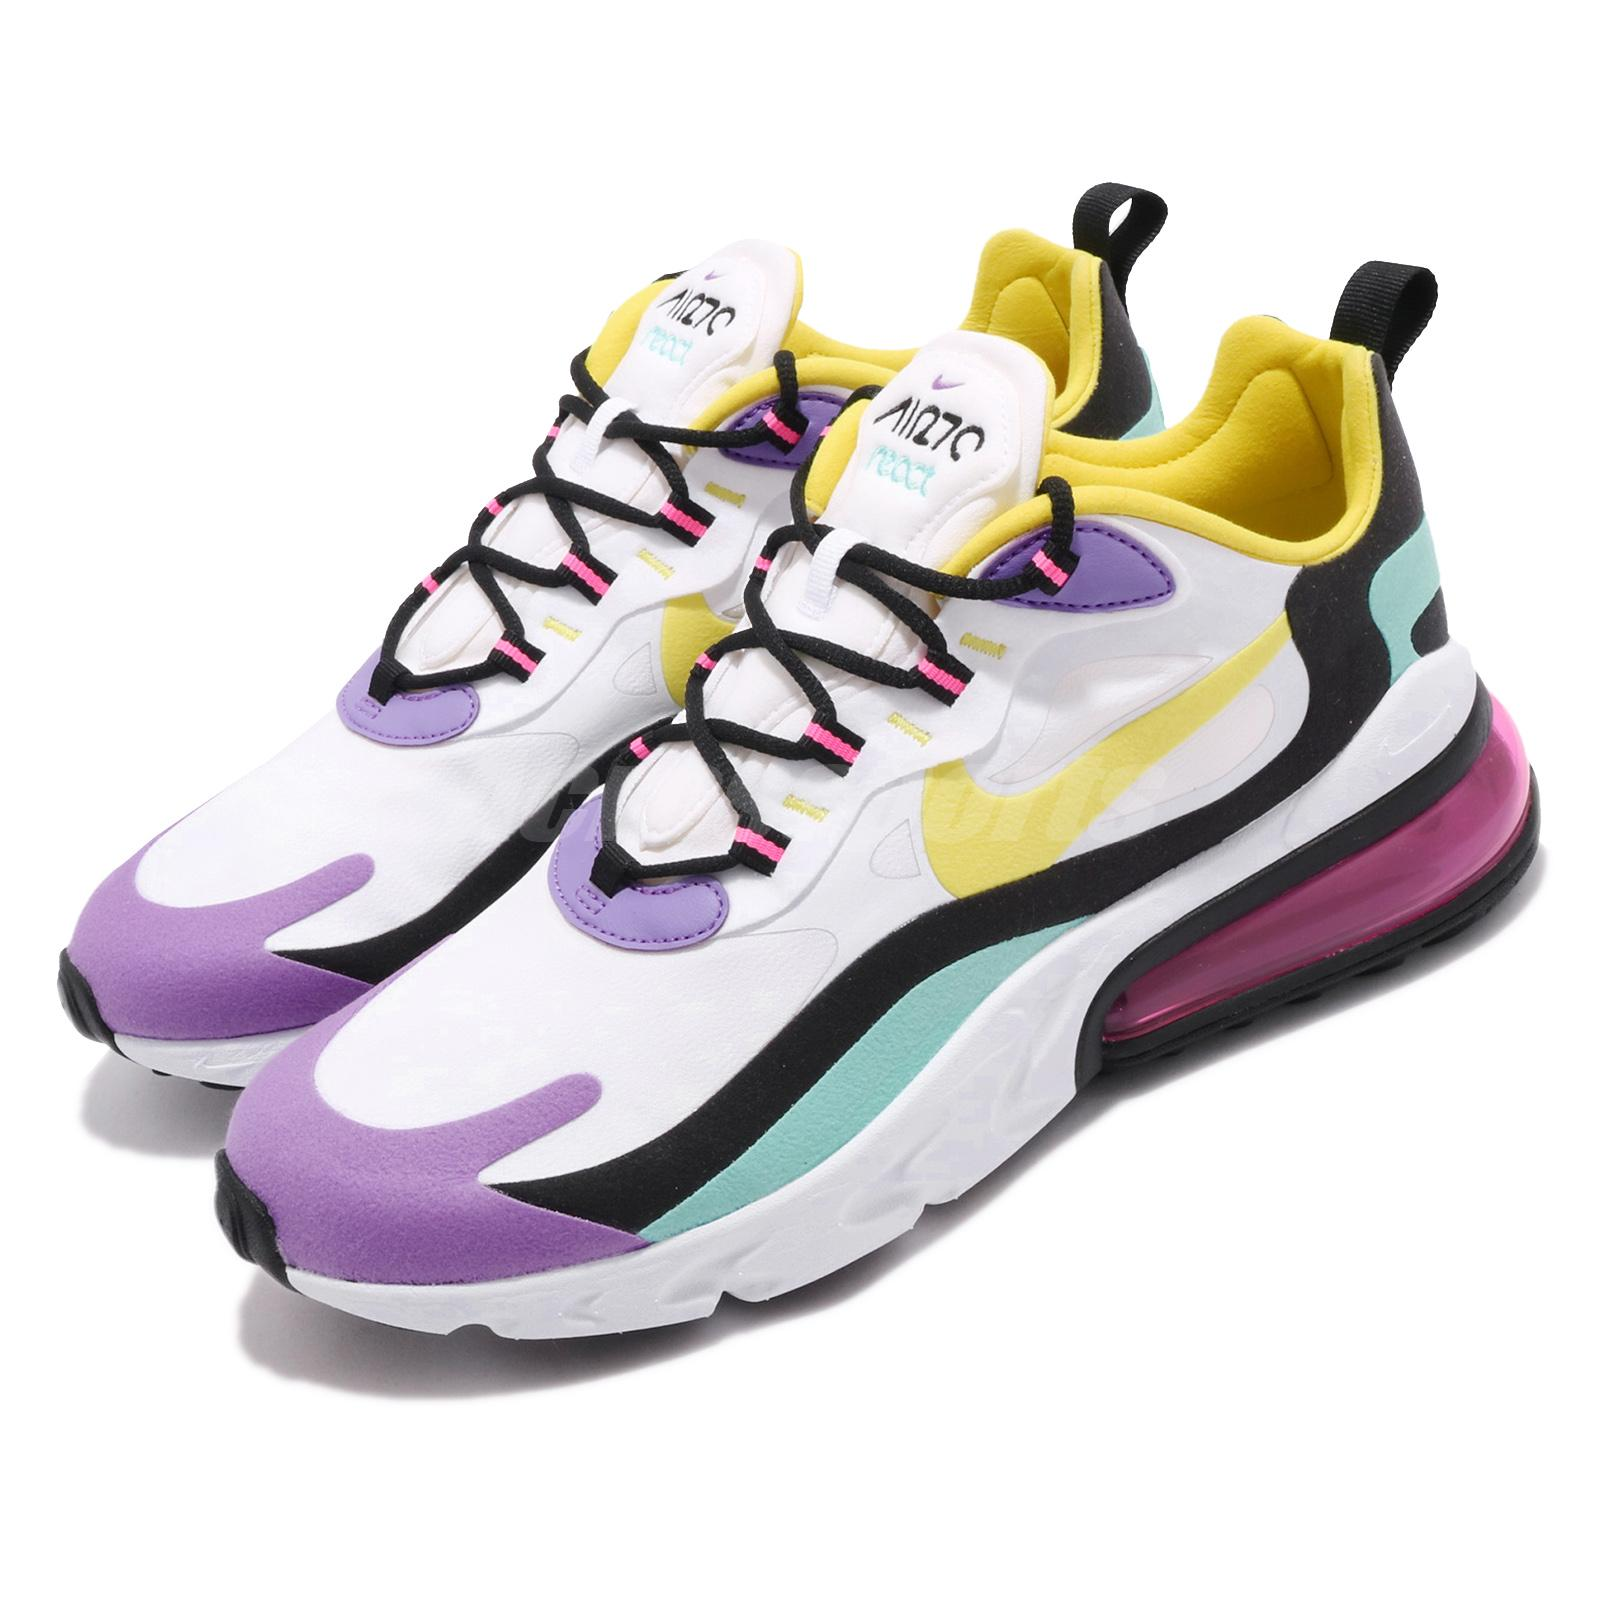 Details about Nike Air Max 270 React Bright Violet White Yellow Mens Running Shoes AO4971 101